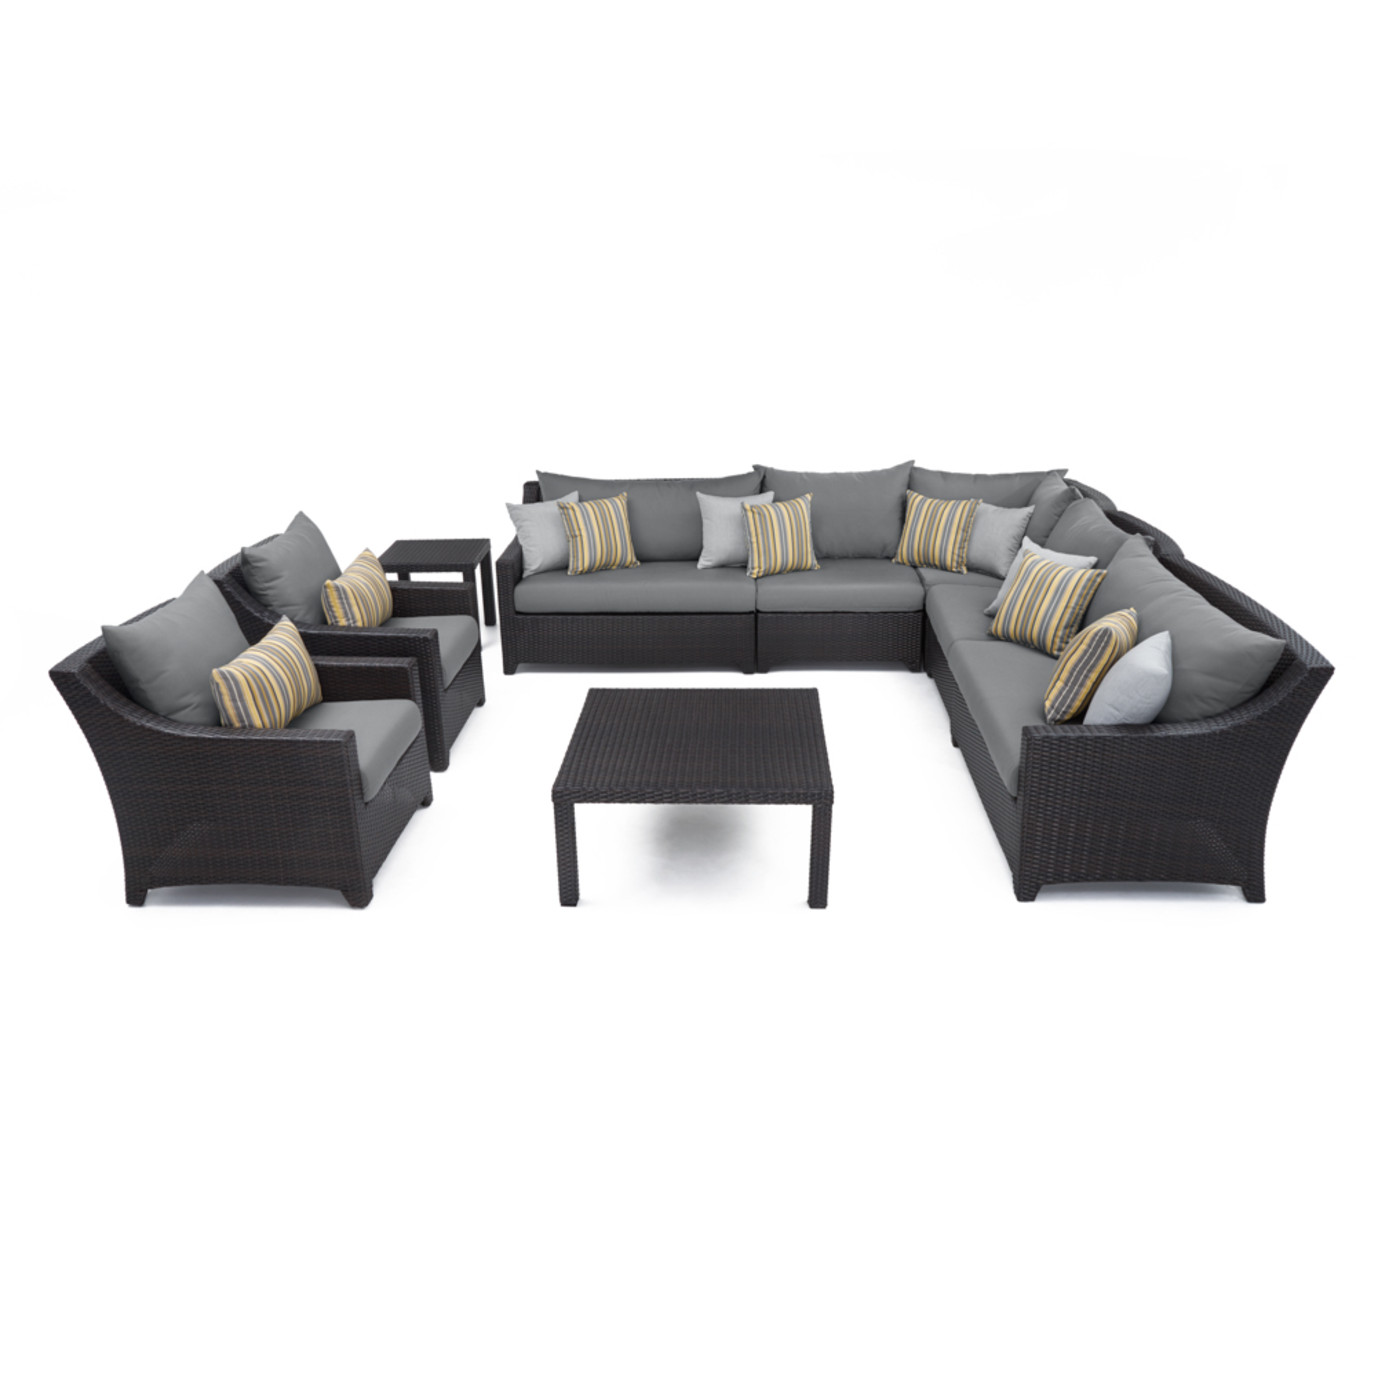 Deco™ 9pc Sectional and Club Set - Charcoal Grey